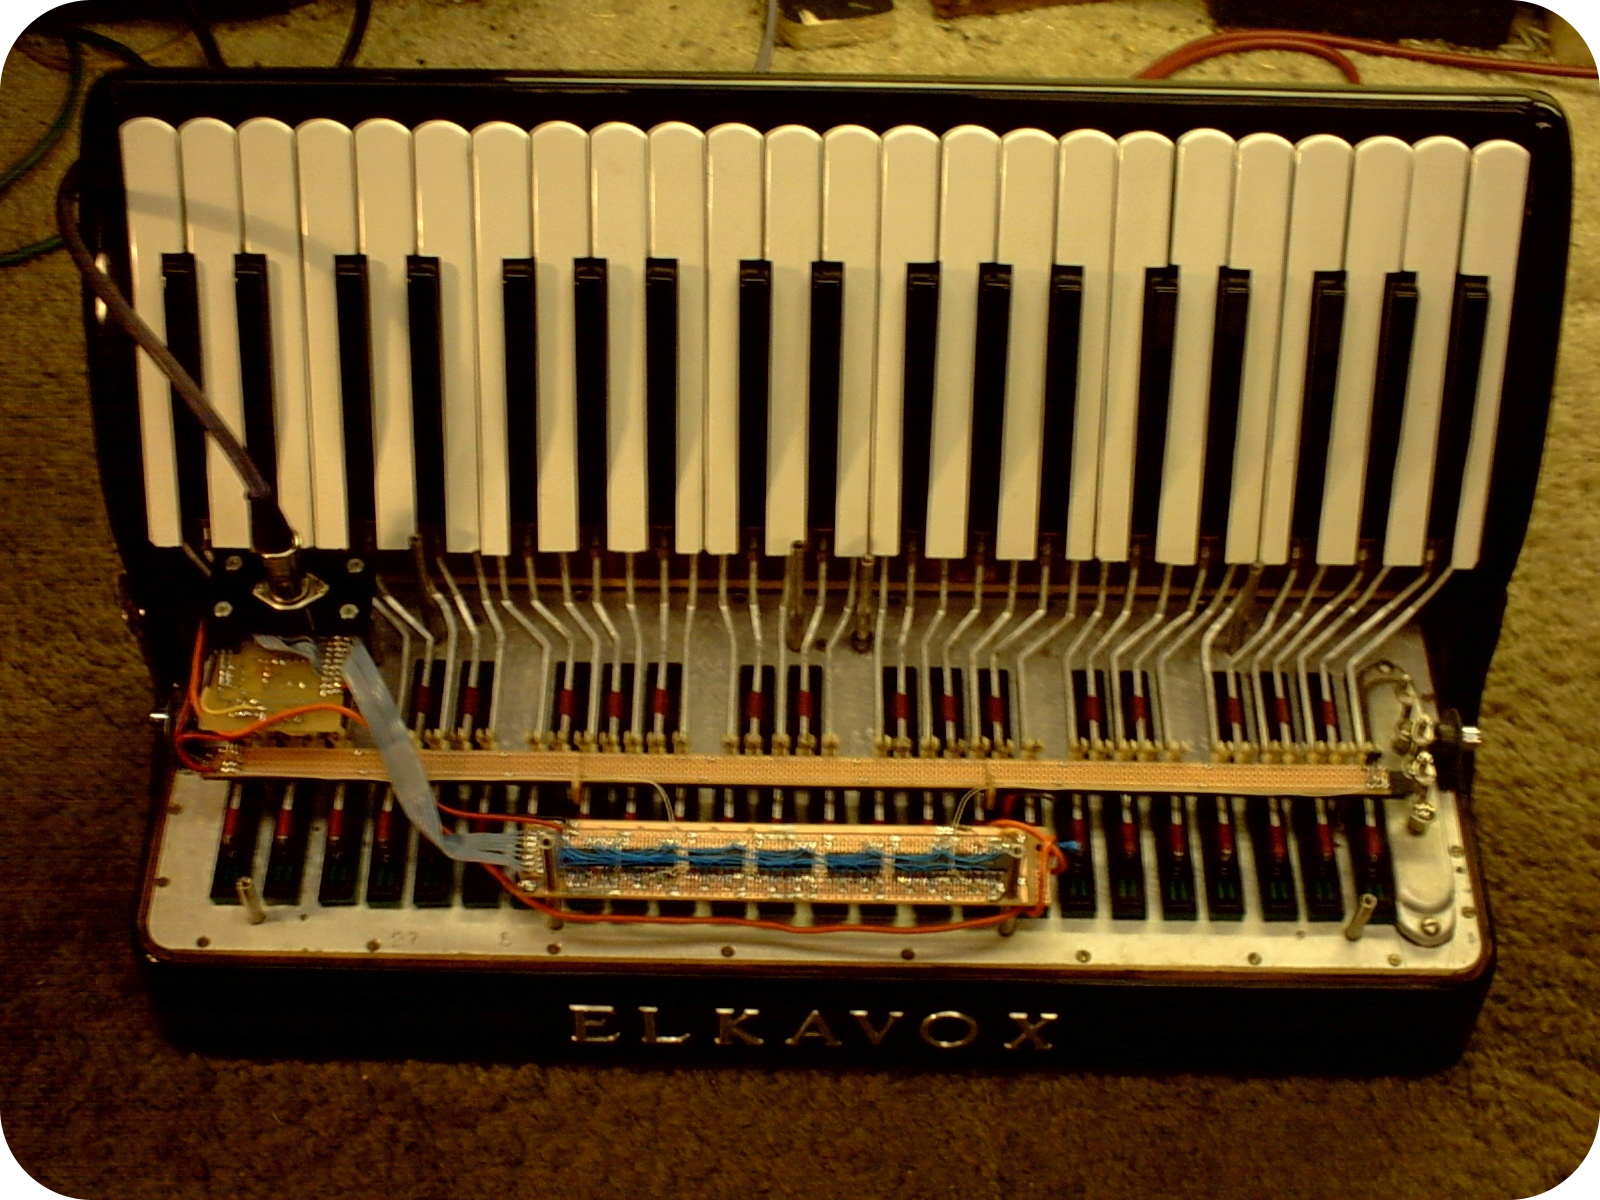 Early Midi Layout3 image